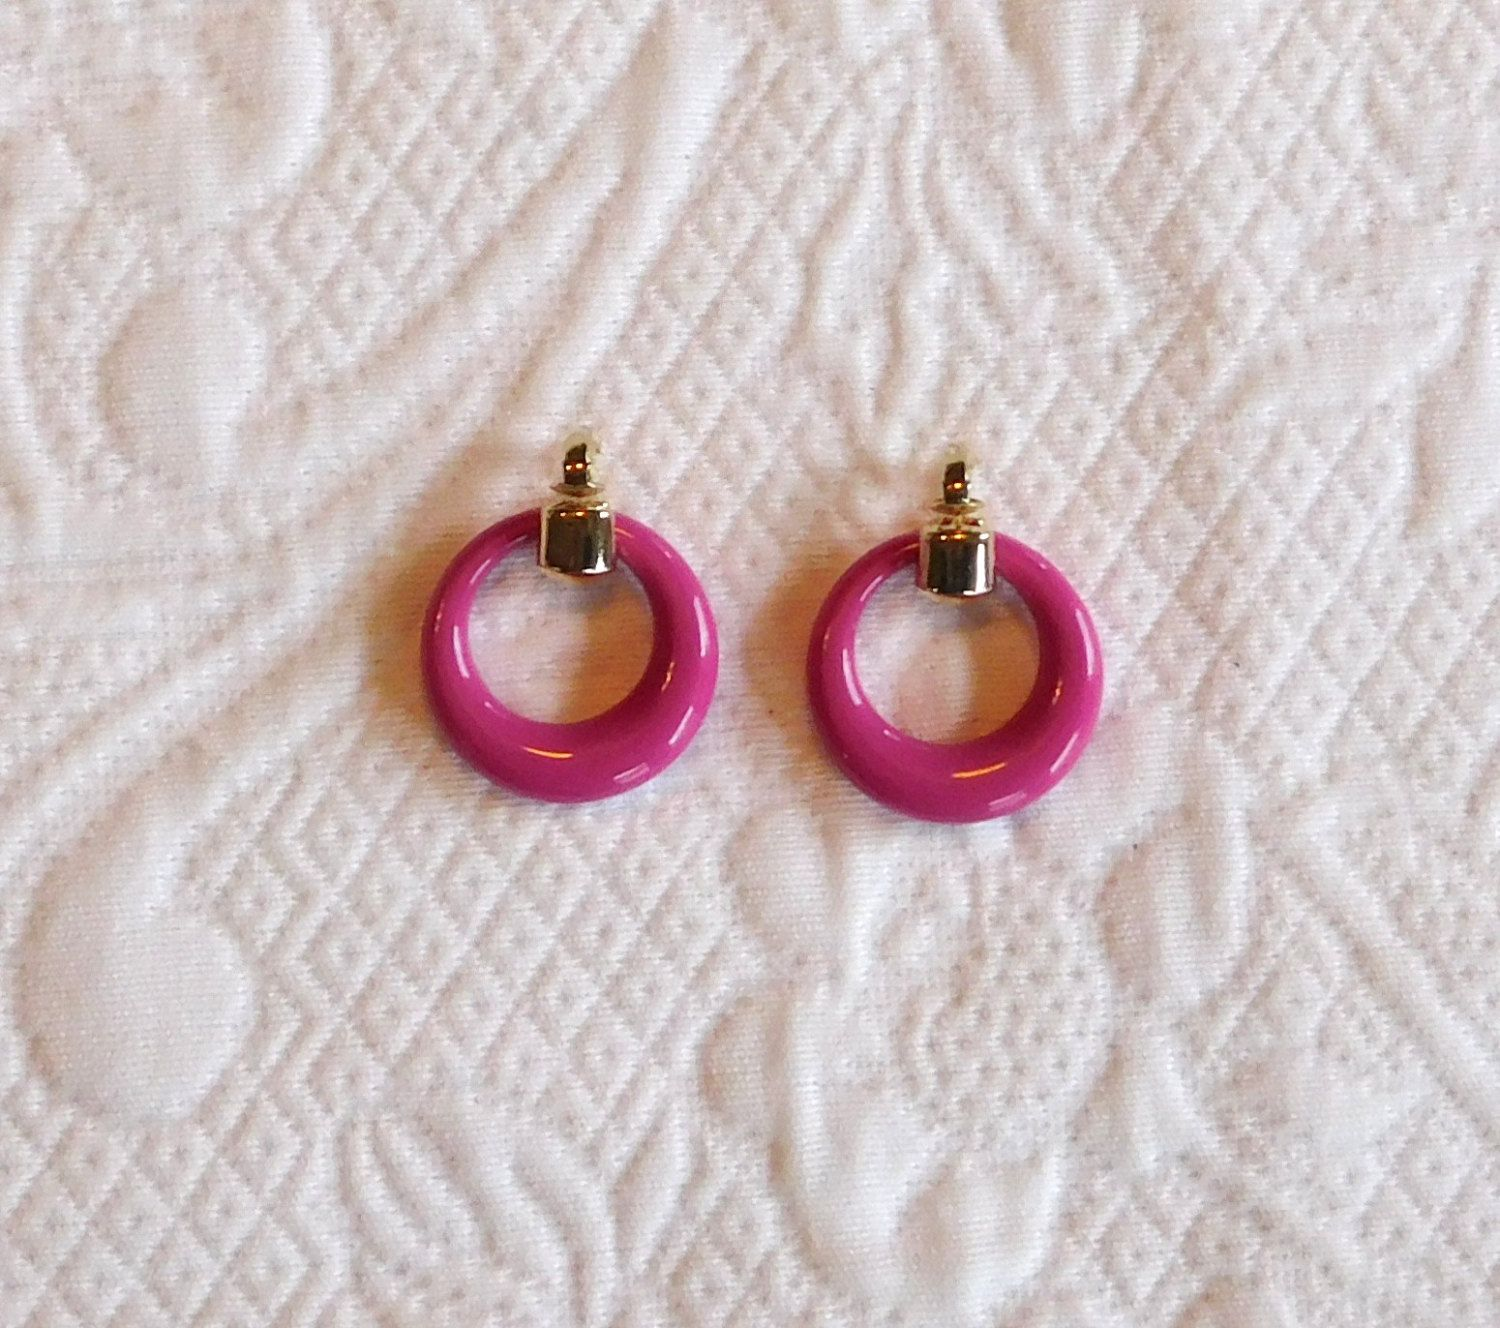 Pink Clip On Earrings Gold Accent Hoop Earrings 80s Jewelry 80s Earrings by LandofBridget on Etsy